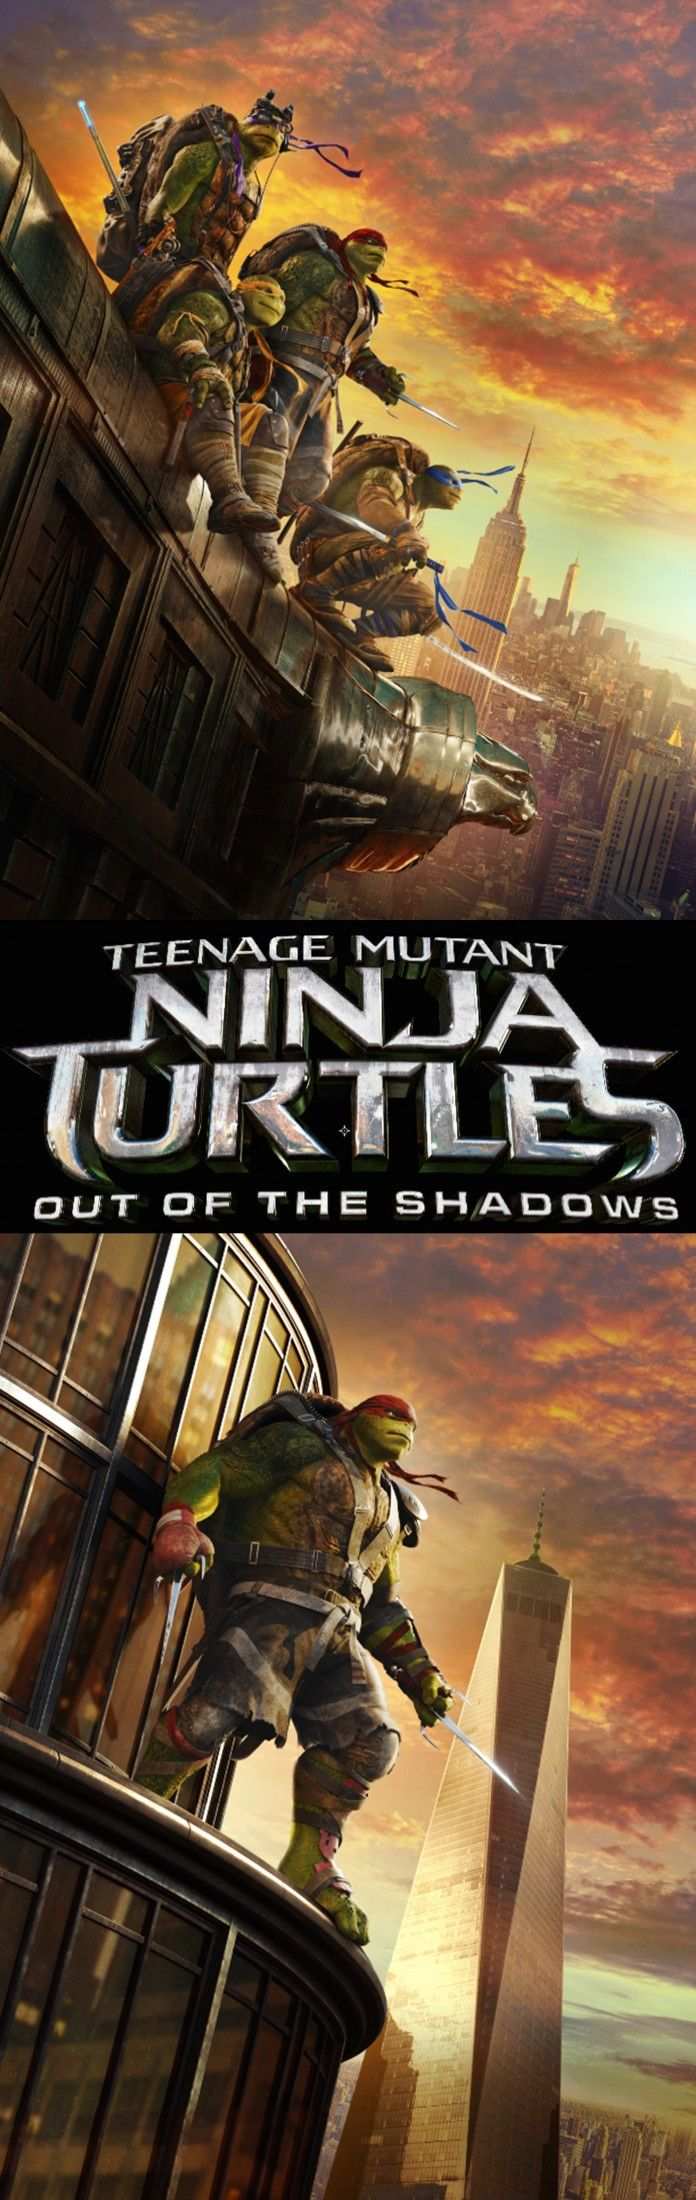 WANTED: Bebop. The turtles are back with Teenage Mutant Ninja Turtles: Out of the Shadows! In theaters June 3, 2016. Get your tickets now!